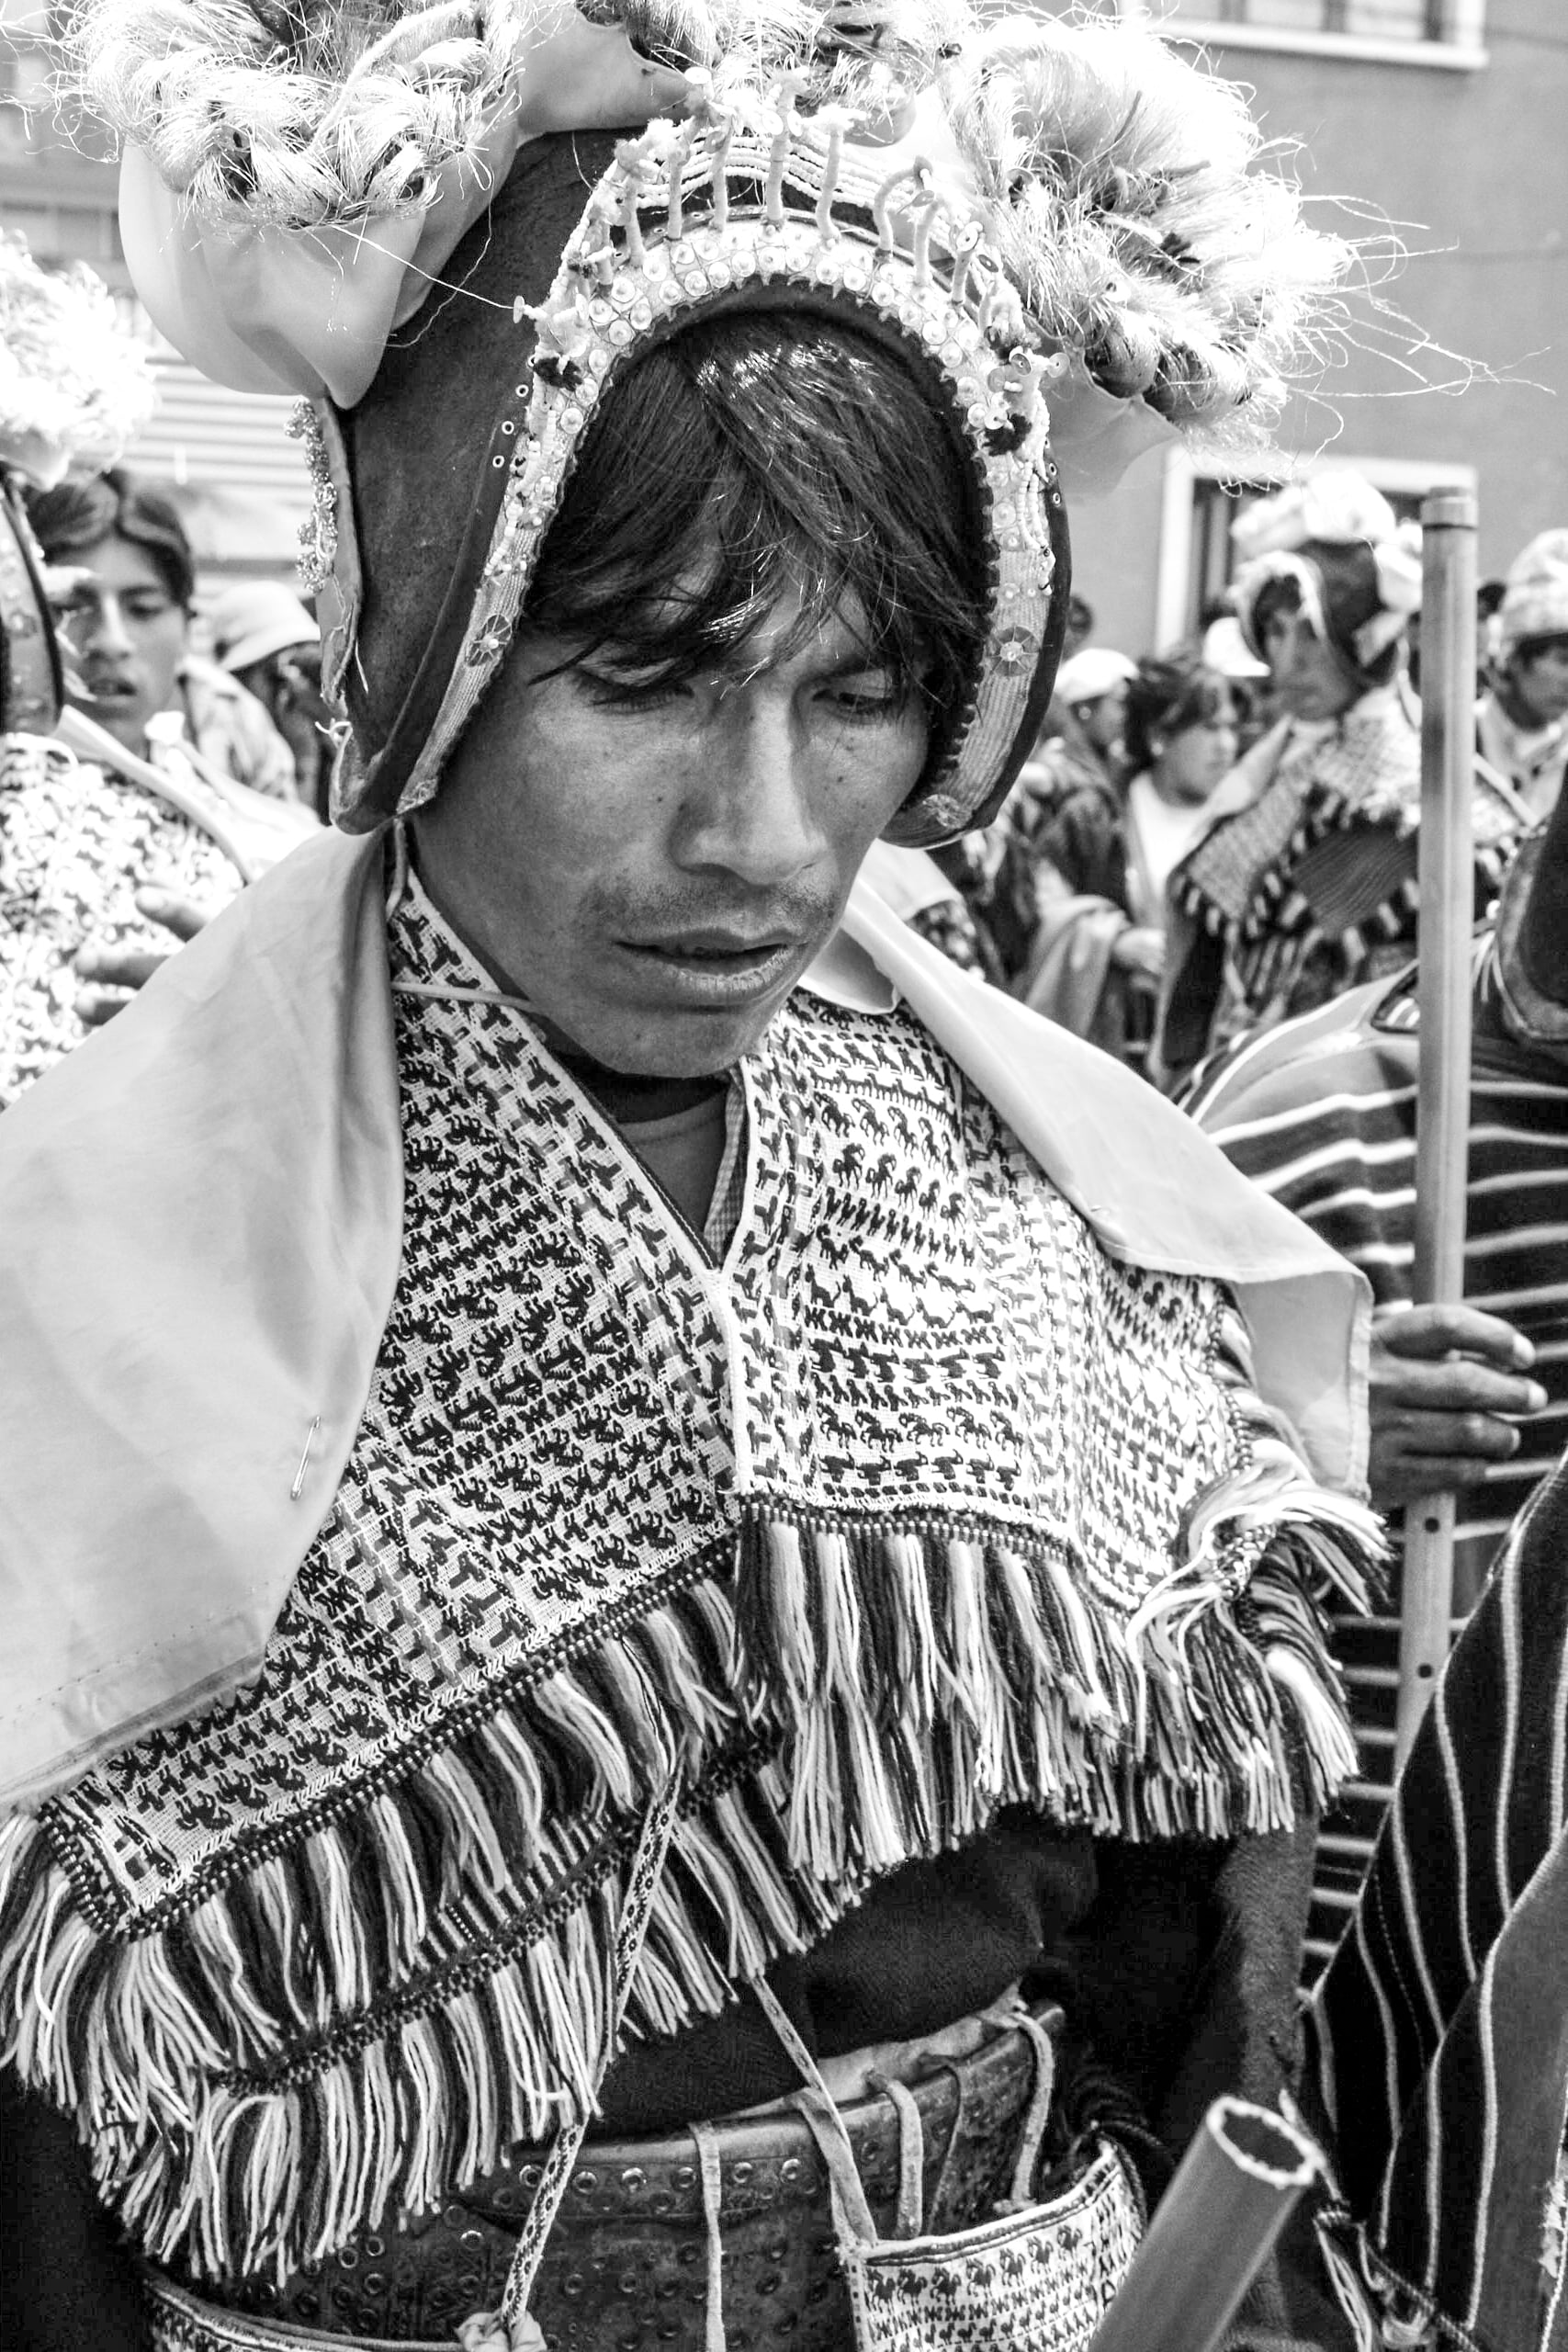 During a parade after the inauguration of Bolivian President Evo Morales.    Bolivia has a indigenous population of 62% and Morales is regarded as the first native president. As the leader of the 'Movement for Socialism' party in Bolivia, Morales has worked to implement policies to reduce poverty and reject the influence of the United States. In 2014, Bolivia banned McDonalds.    Since his first term in 2006,  Morales has been celebrated for his political recognition of indigenous people but criticised for his fascist style of ruling.